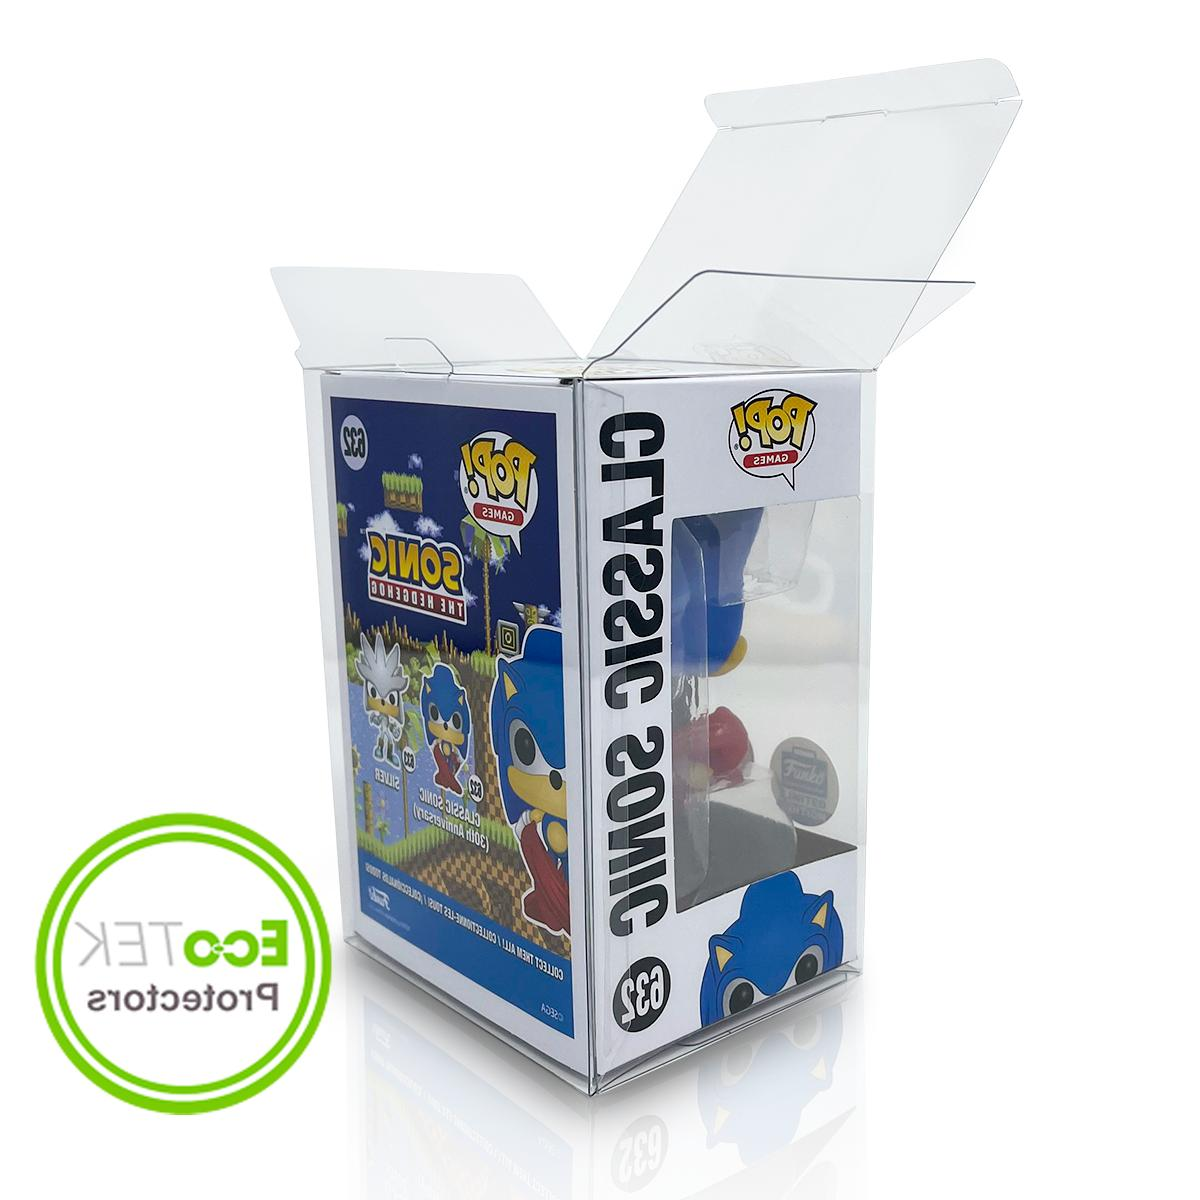 funko pop protector case for 4 inch